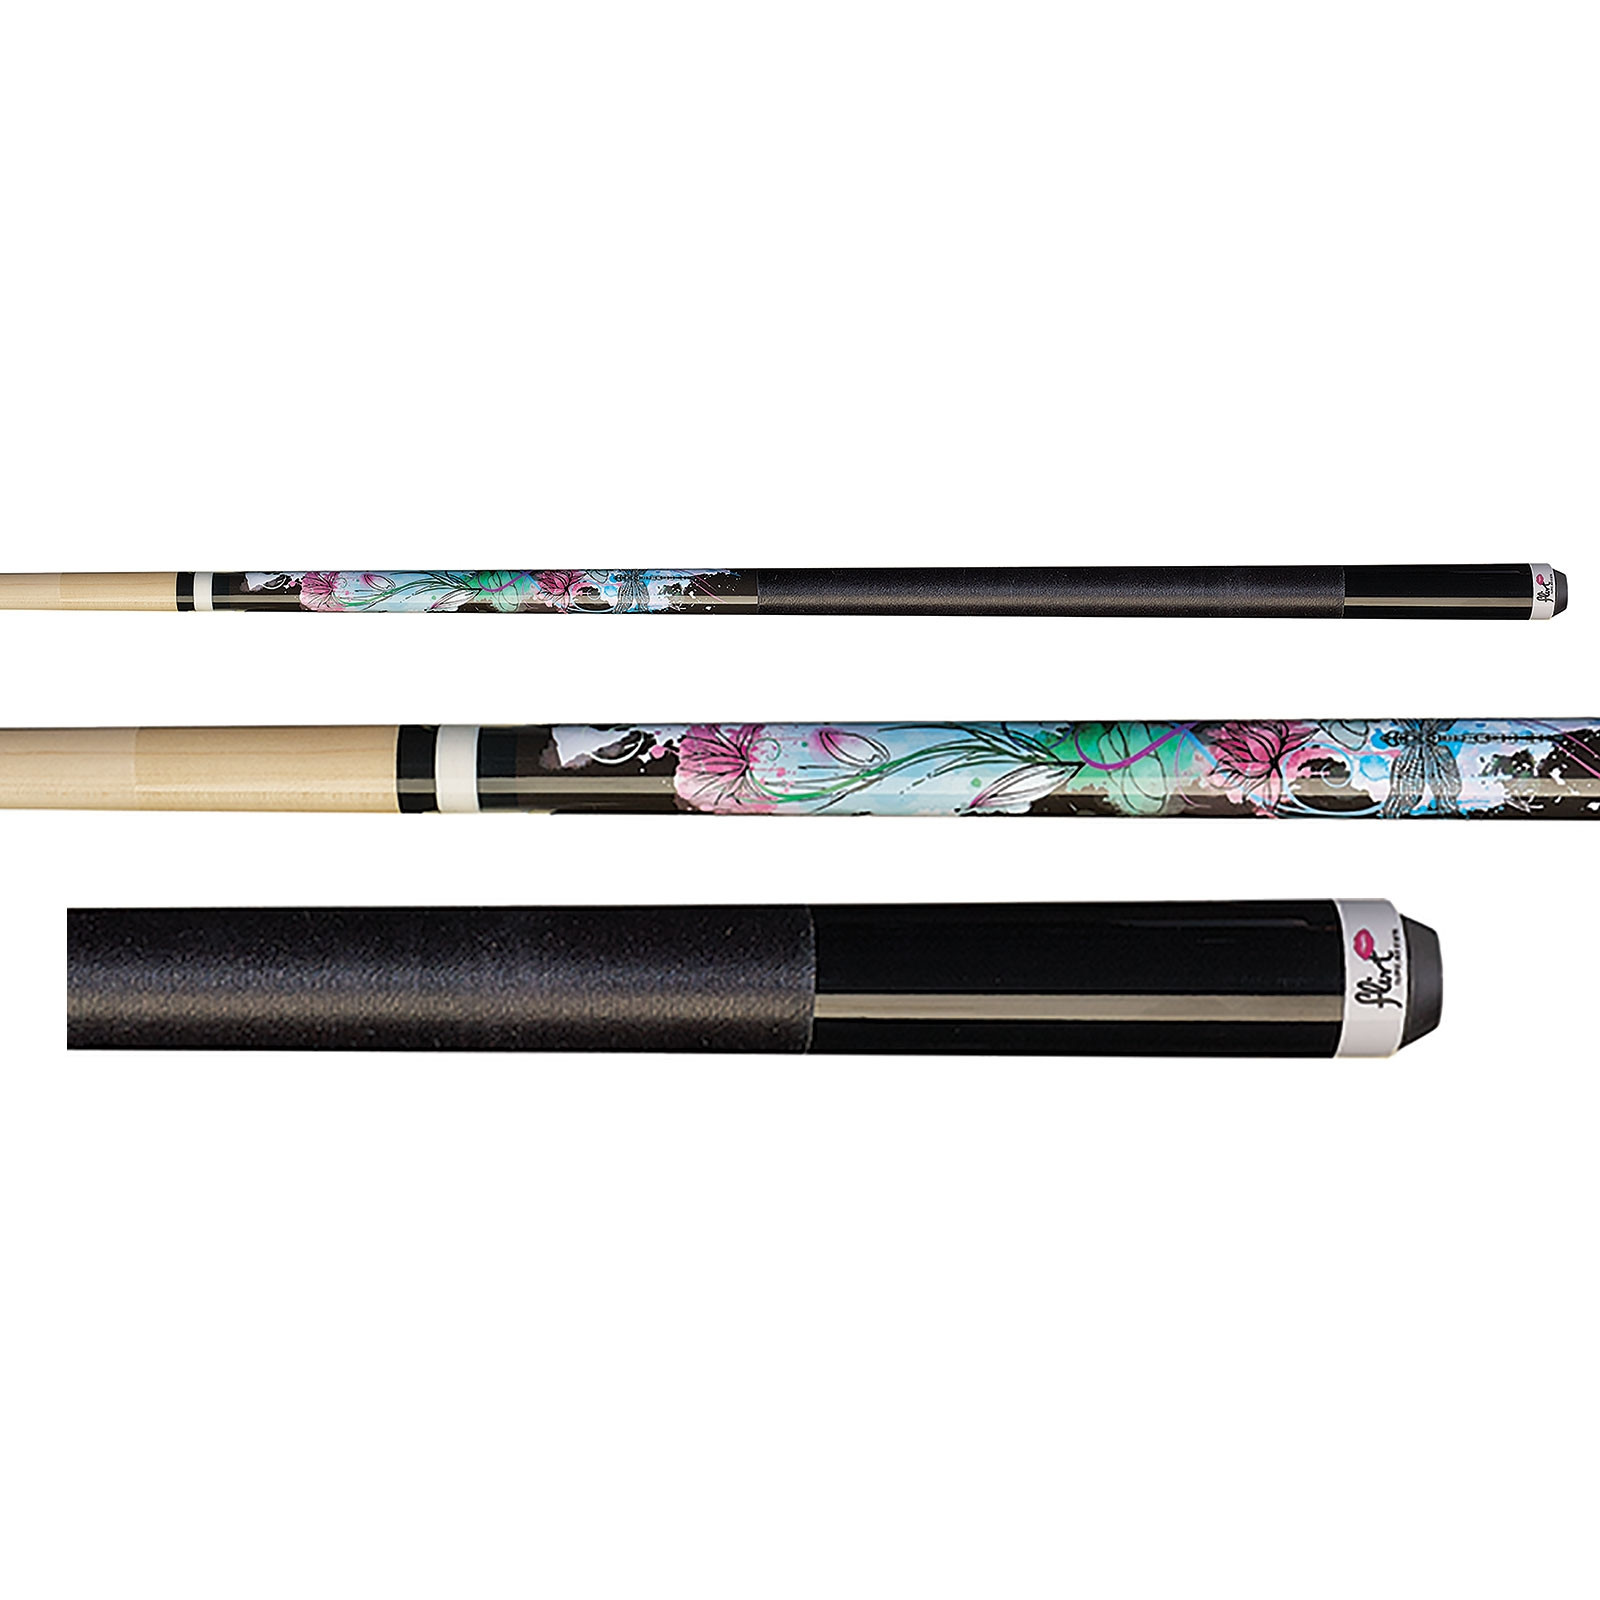 Players F-2605 Flirt Dragonfly Pool Cue Stick